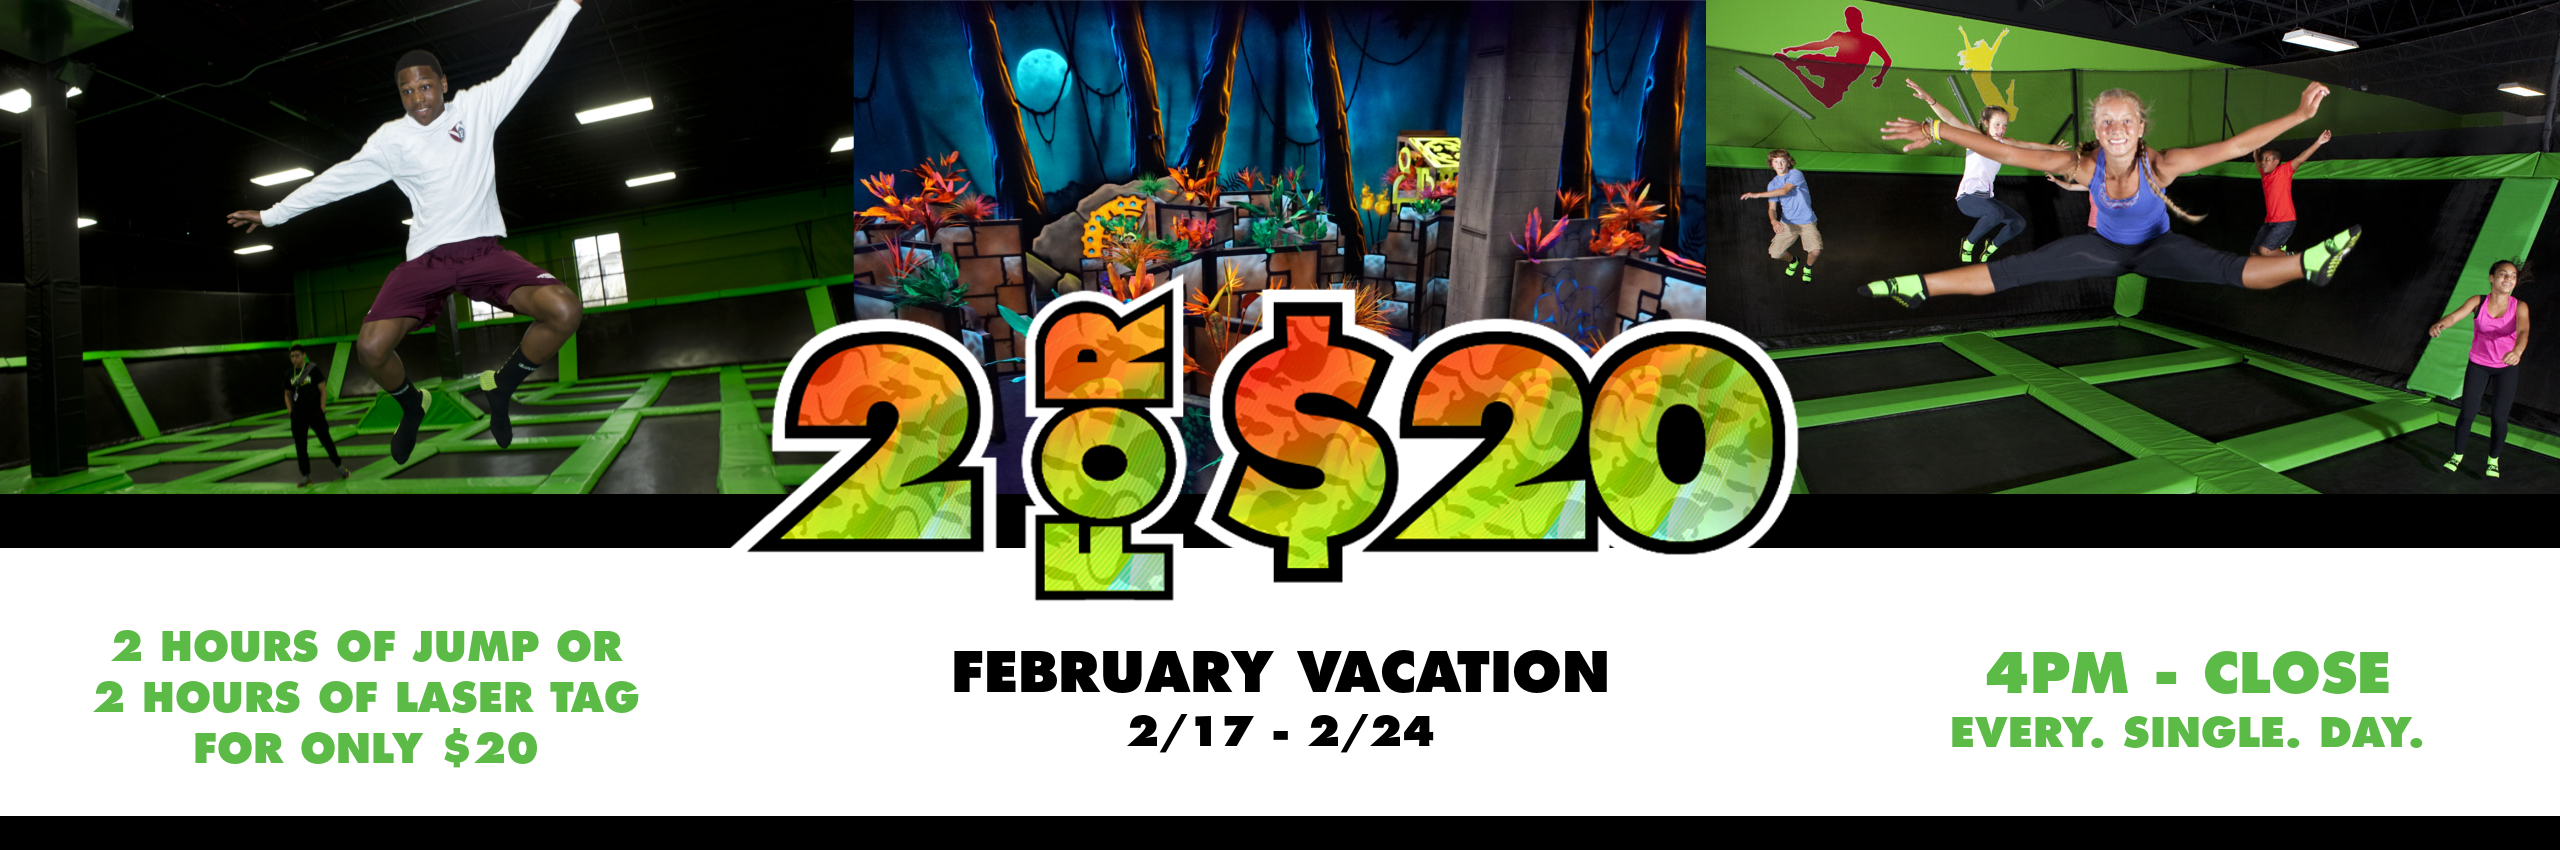 Feb. Vacation Promo 2018